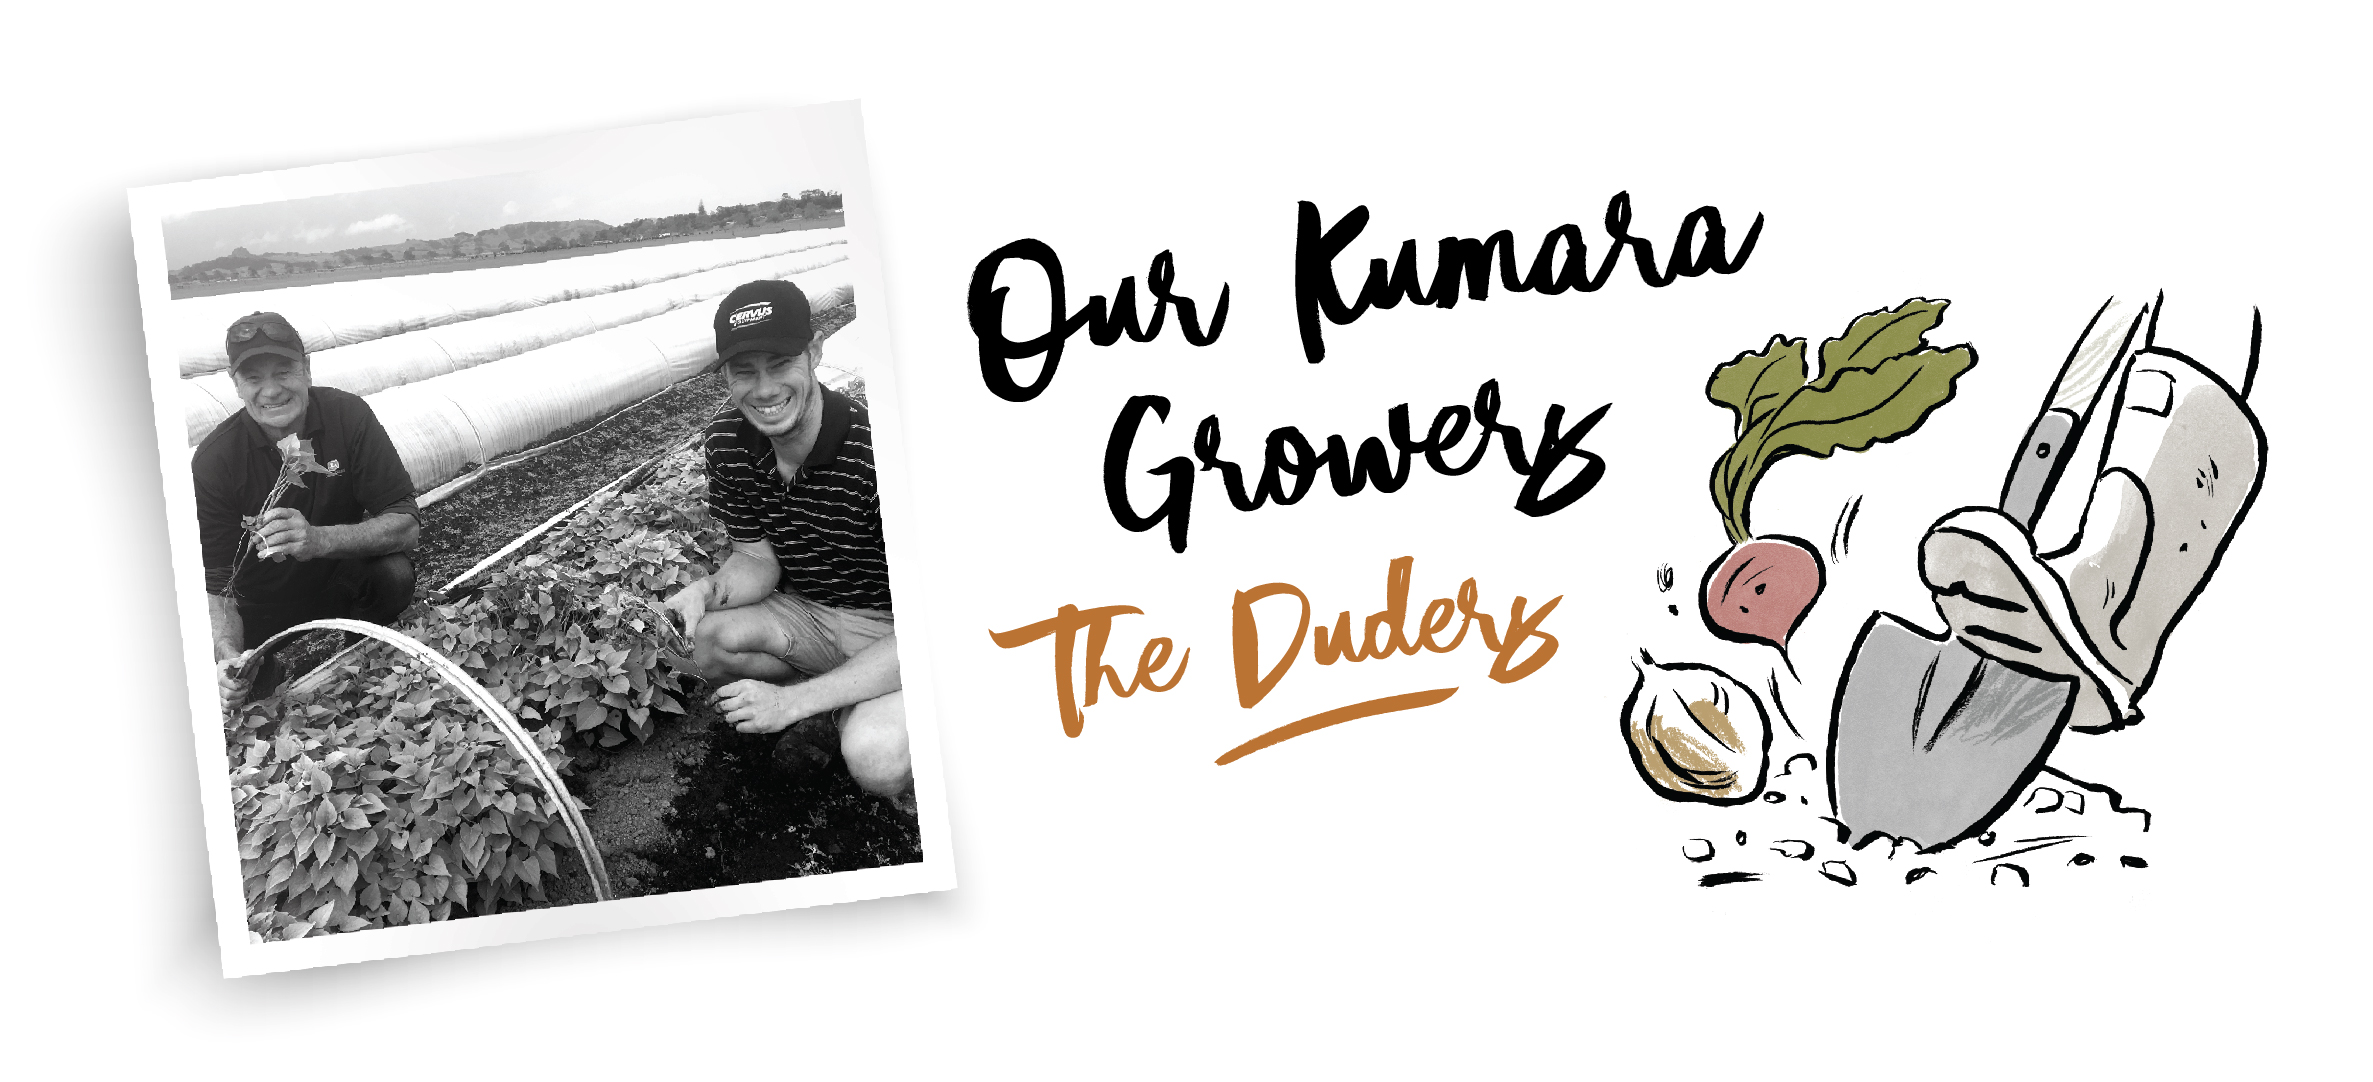 The Duders-01.jpg